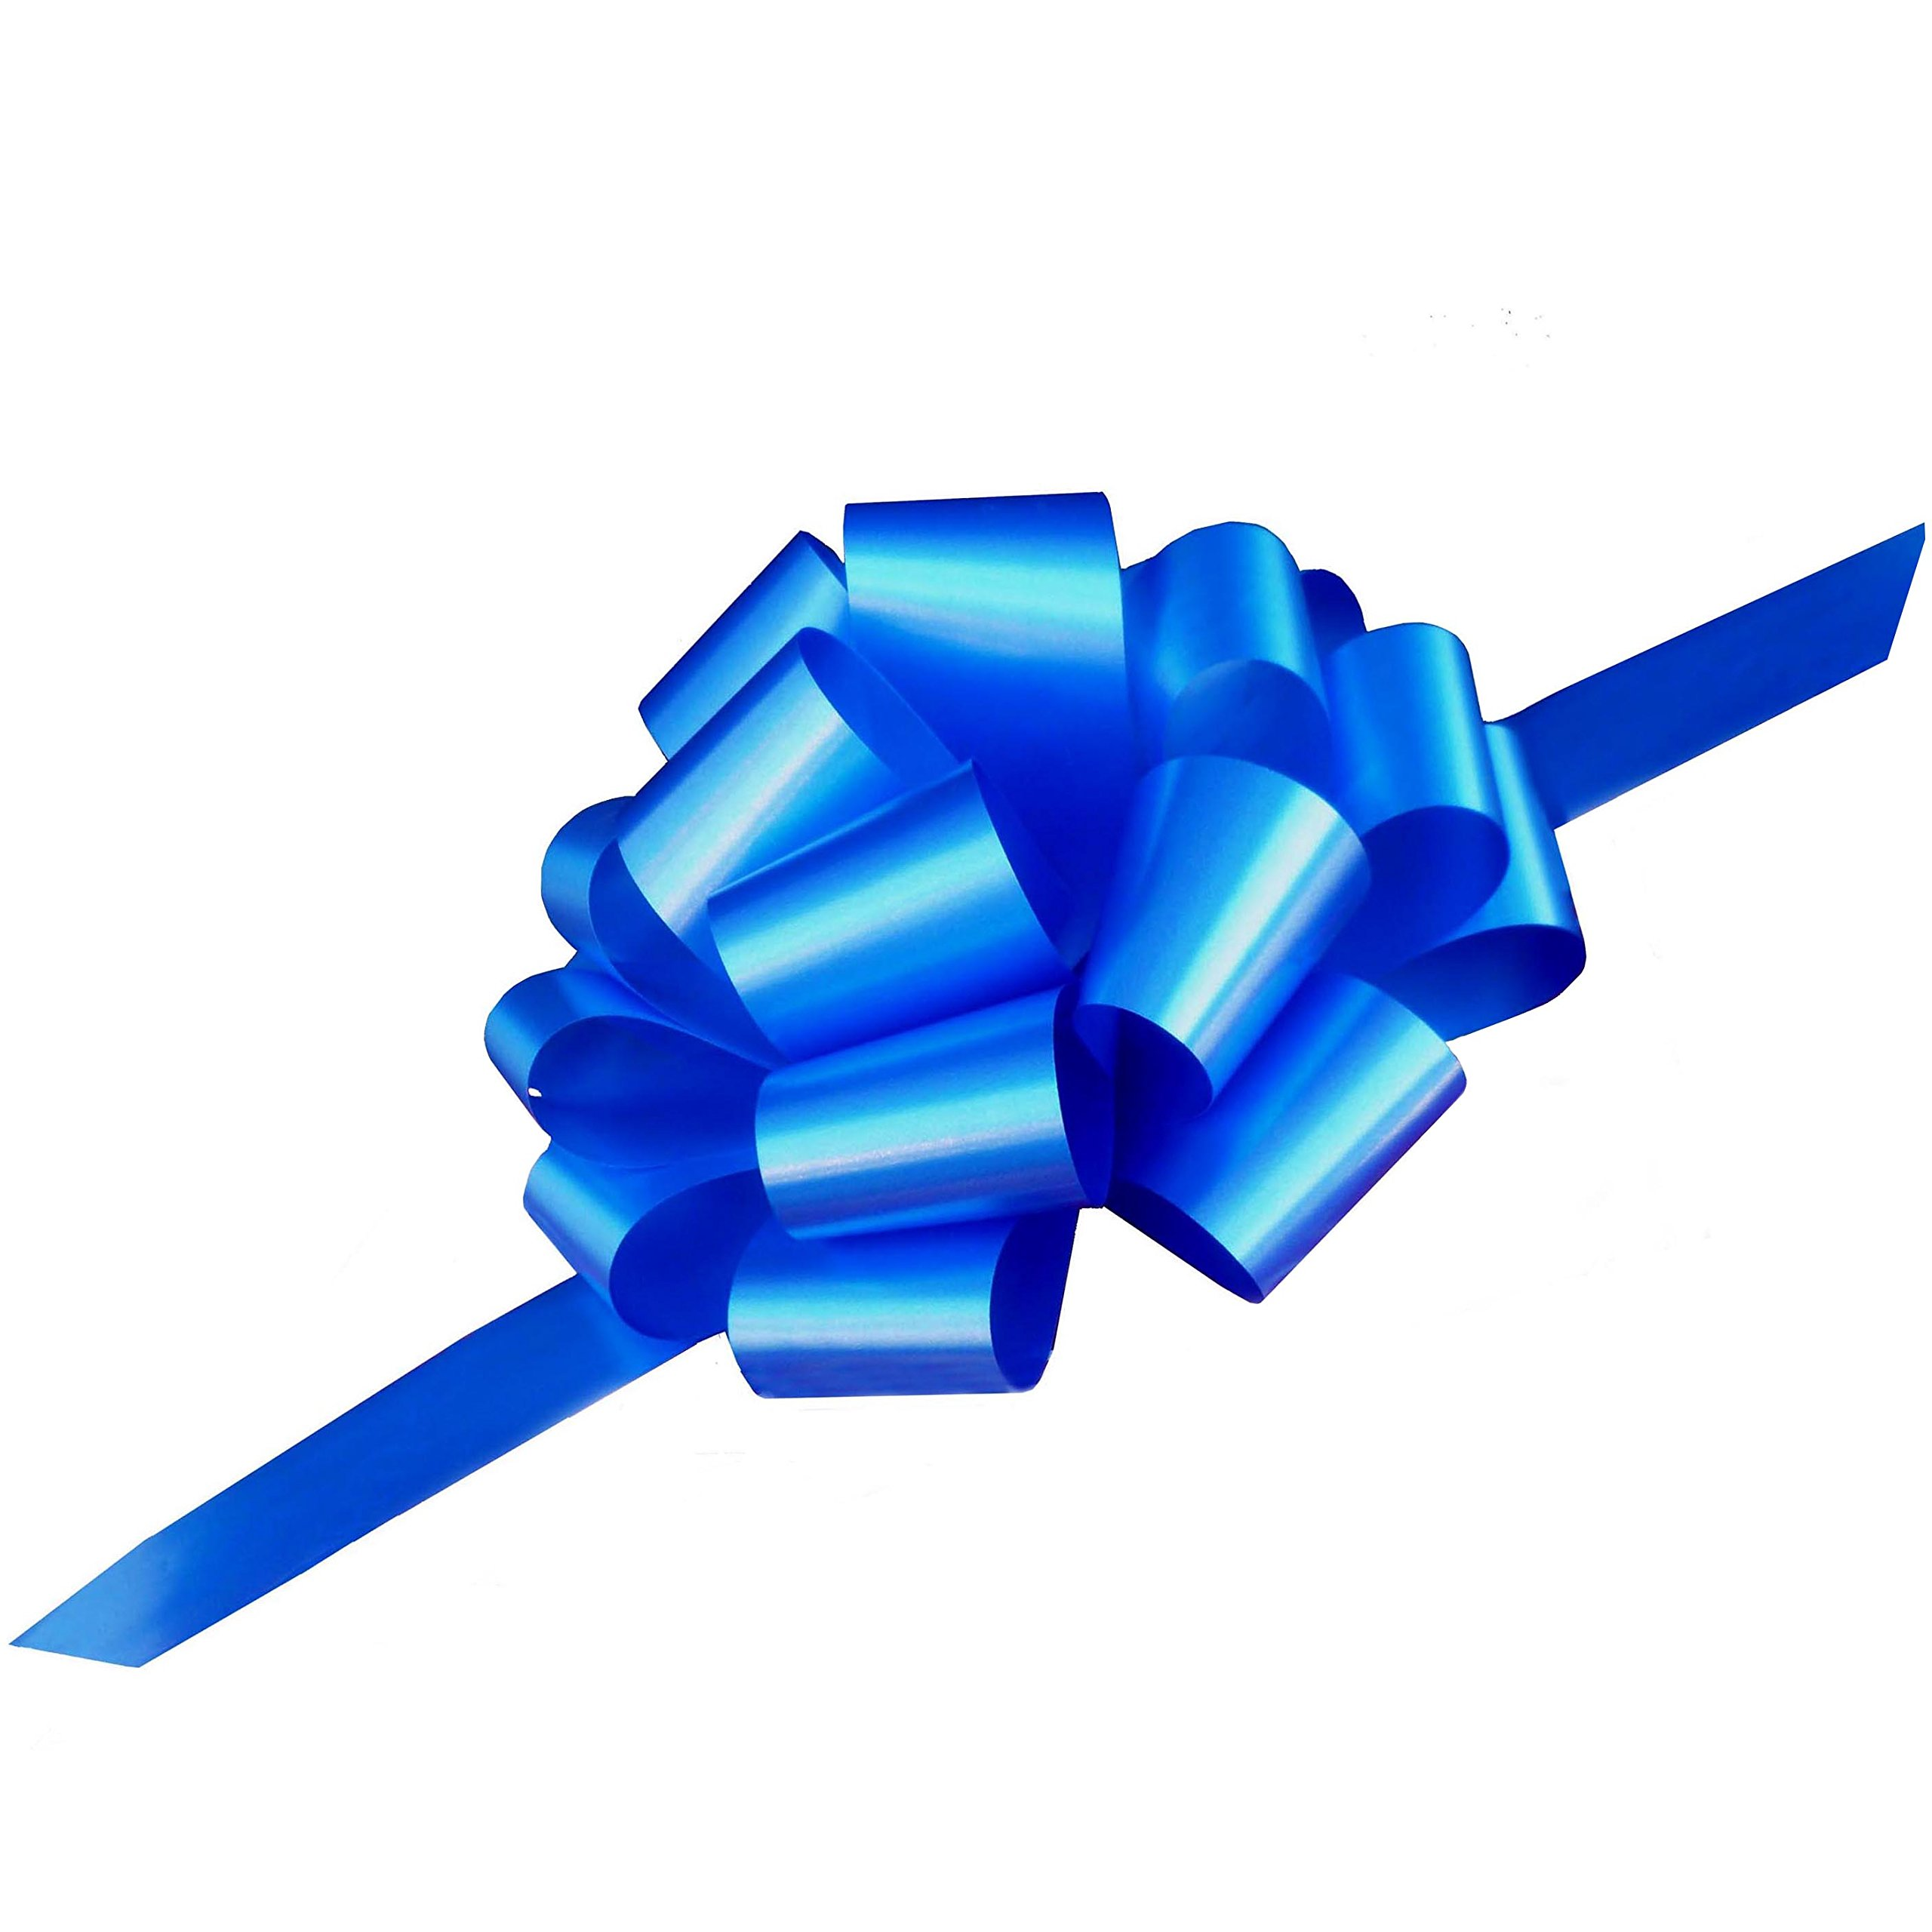 Large Royal Blue Ribbon Pull Bows - 9'' Wide, Set of 6, Police Support, Graduation, Awareness Décor, Christmas Ribbons